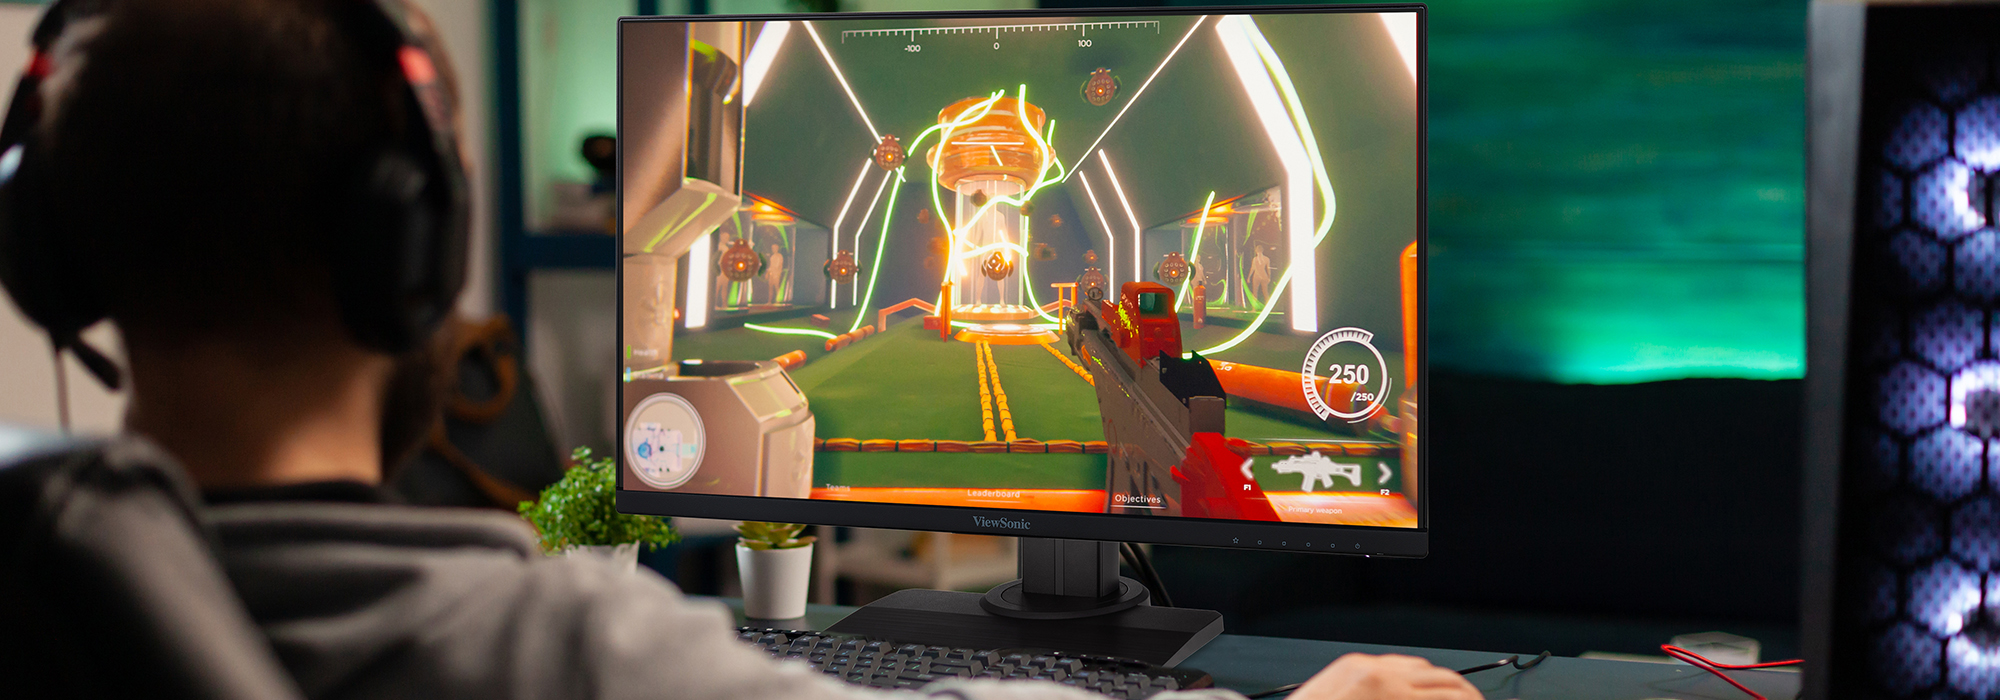 ViewSonic Releases Blur Busters Approved XG2431, the Newest 240-Hz, 1ms Response Time 24-Inch Gaming Monitor